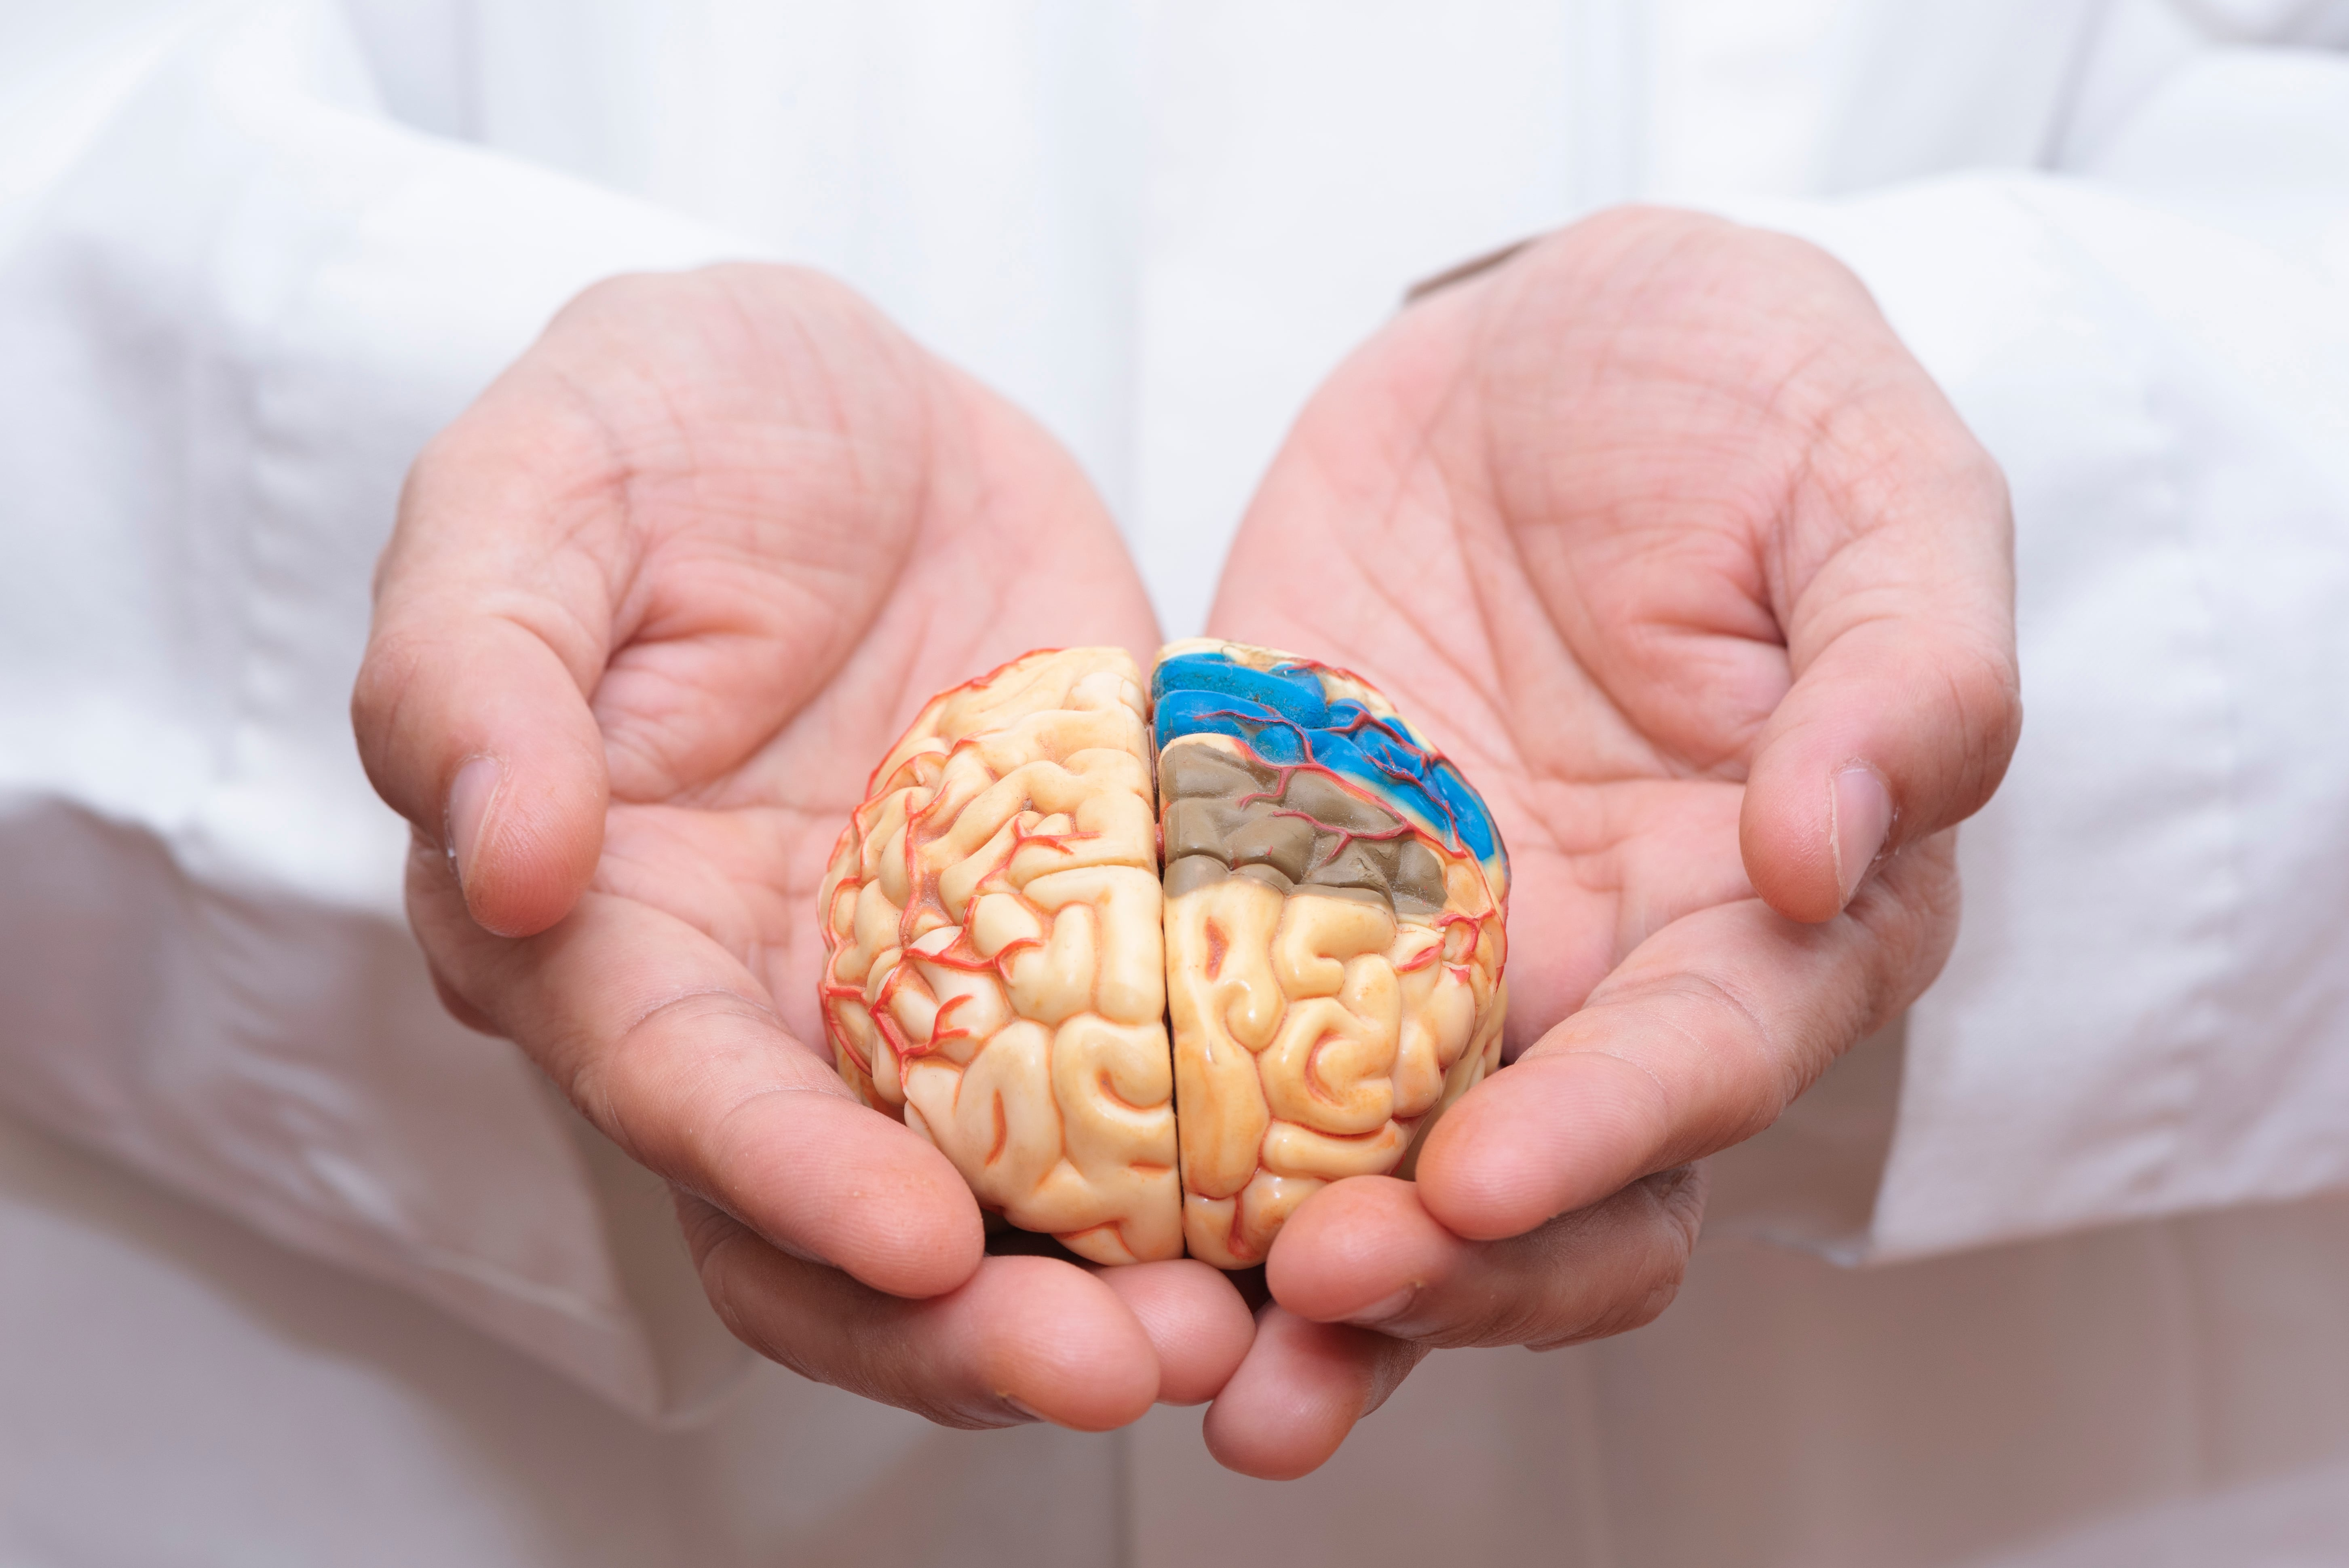 Man Holding the brain